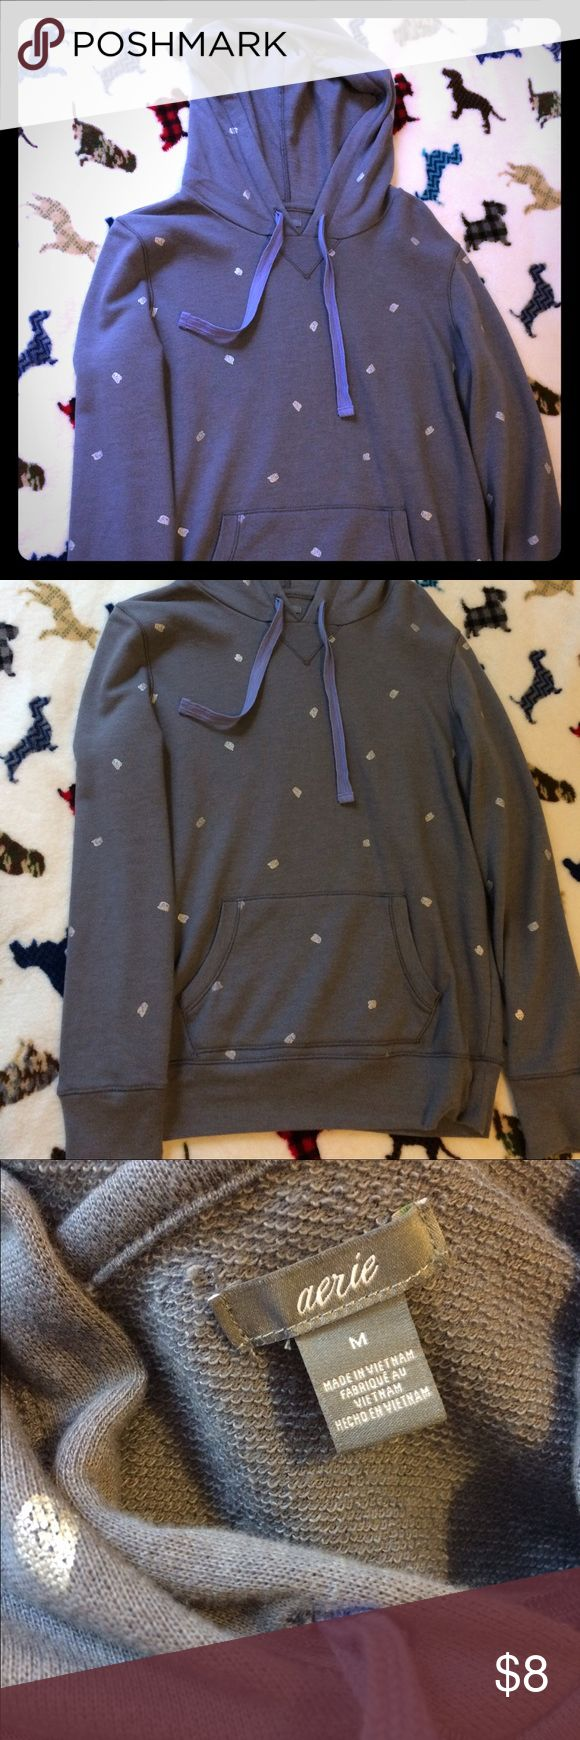 Aerie Polka Dot Hoodie Soft and warm polka dot hoodie! Worn once or twice, perfect condition! Light blue with silver polka dots! aerie Tops Sweatshirts & Hoodies